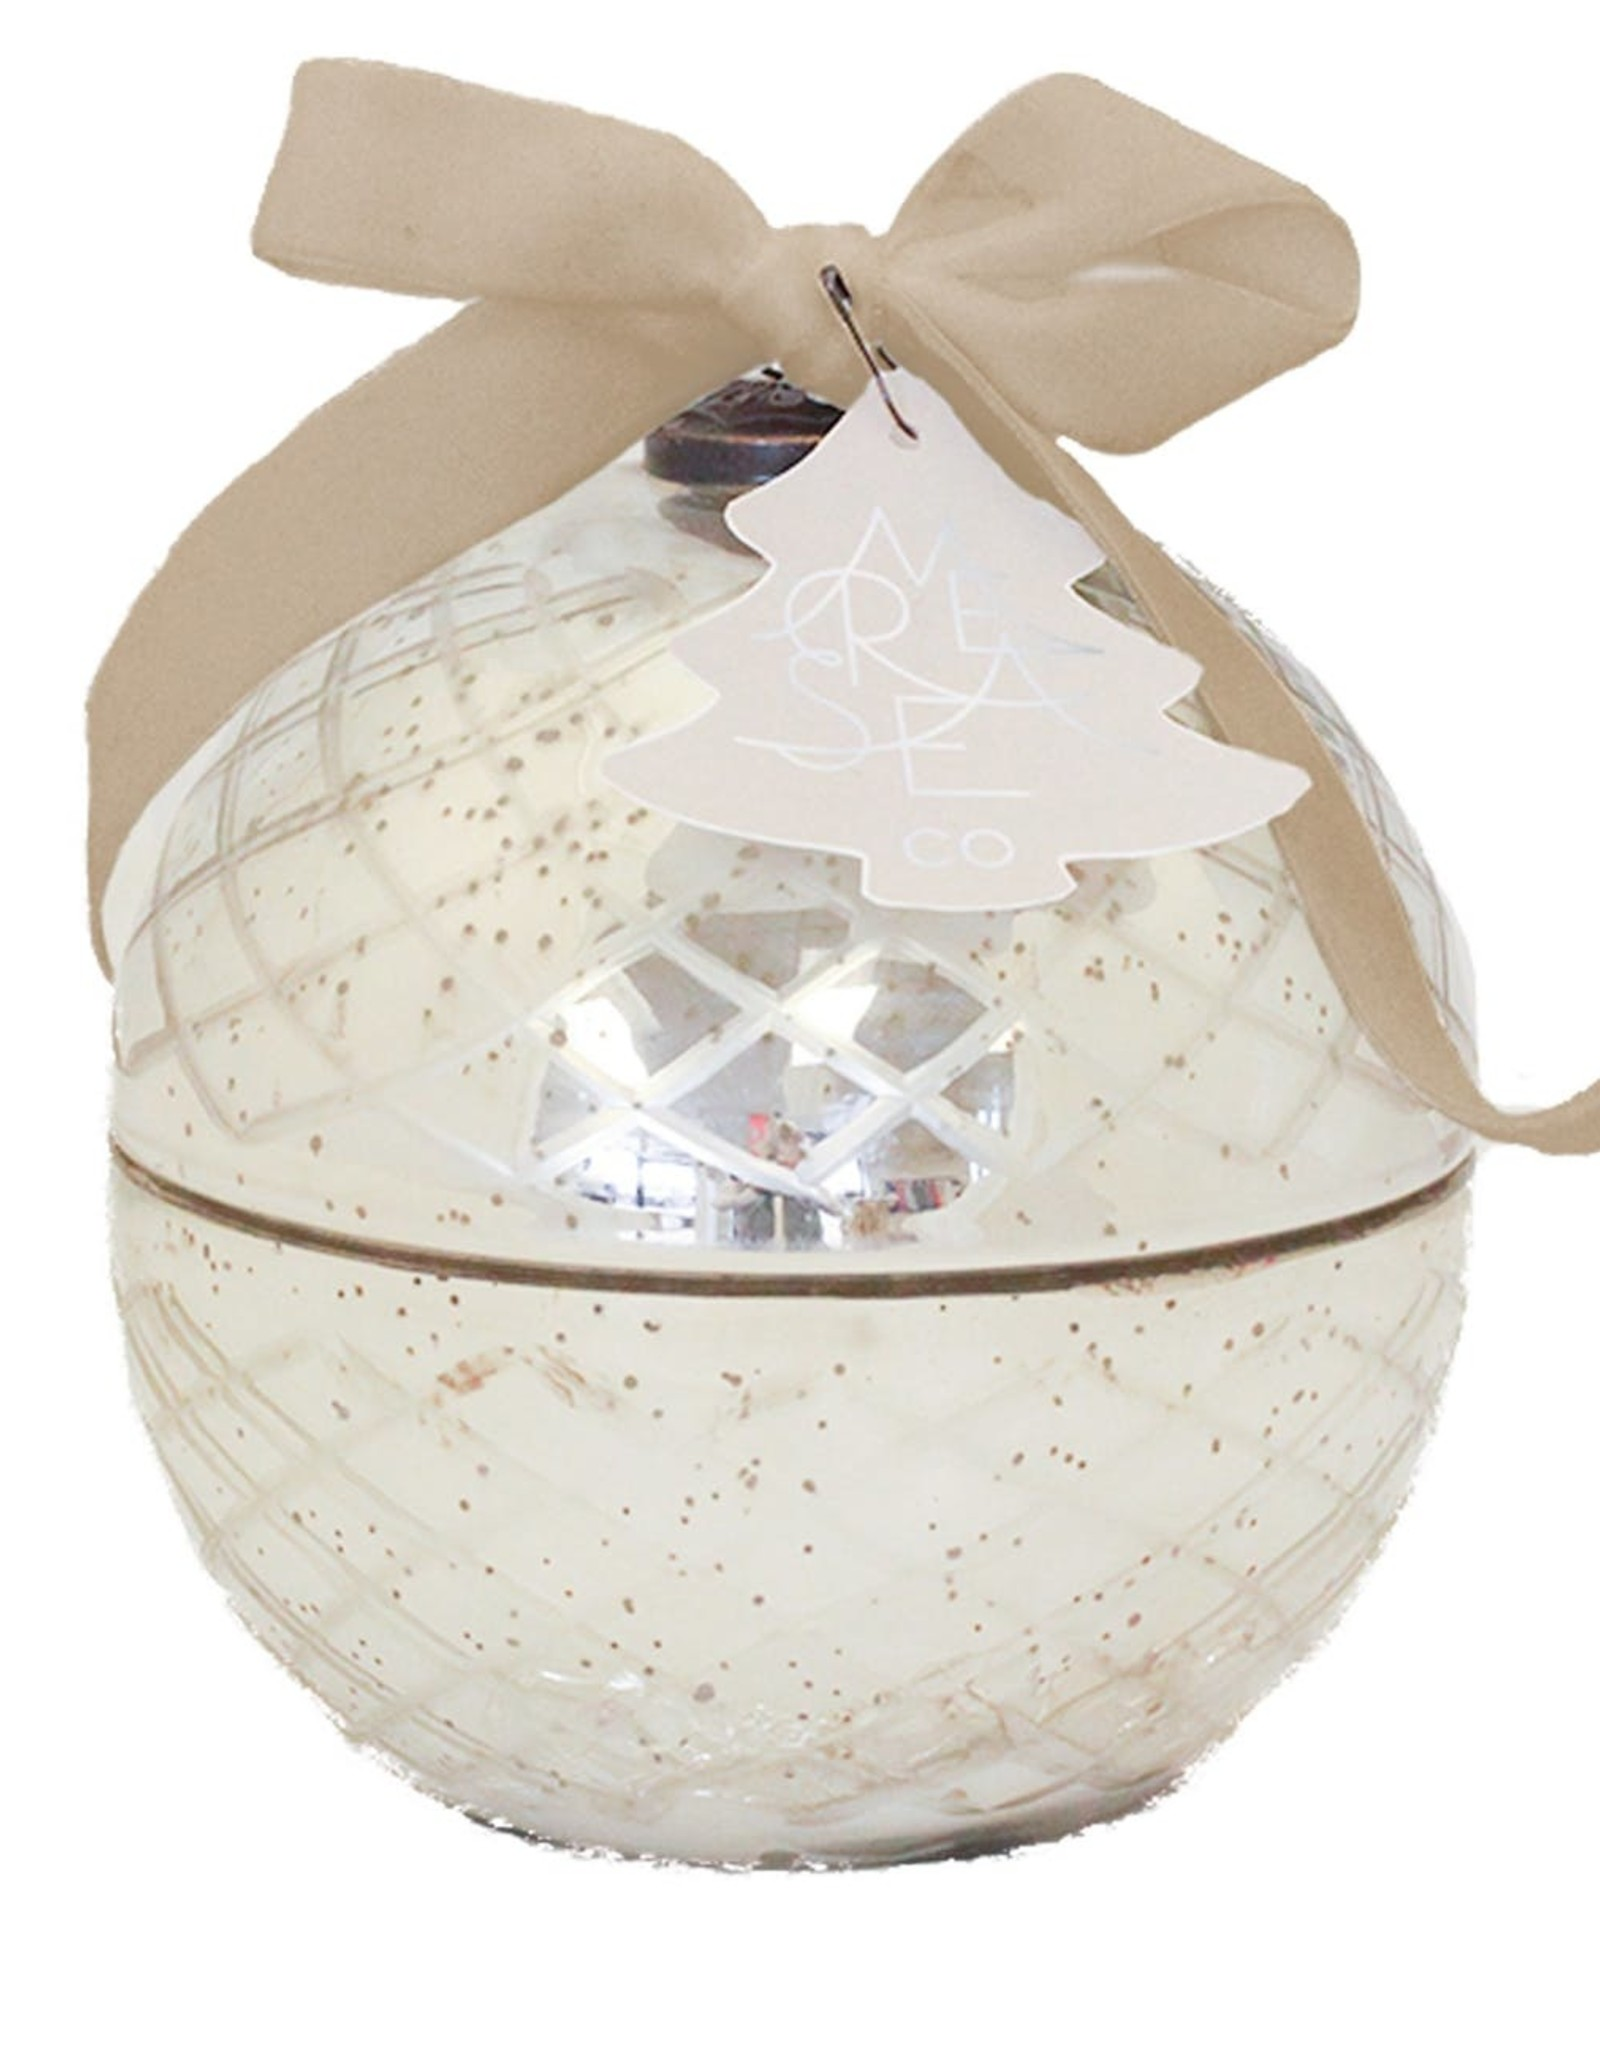 Mersea Mer-Sea Retro Ornament Candle 14 oz